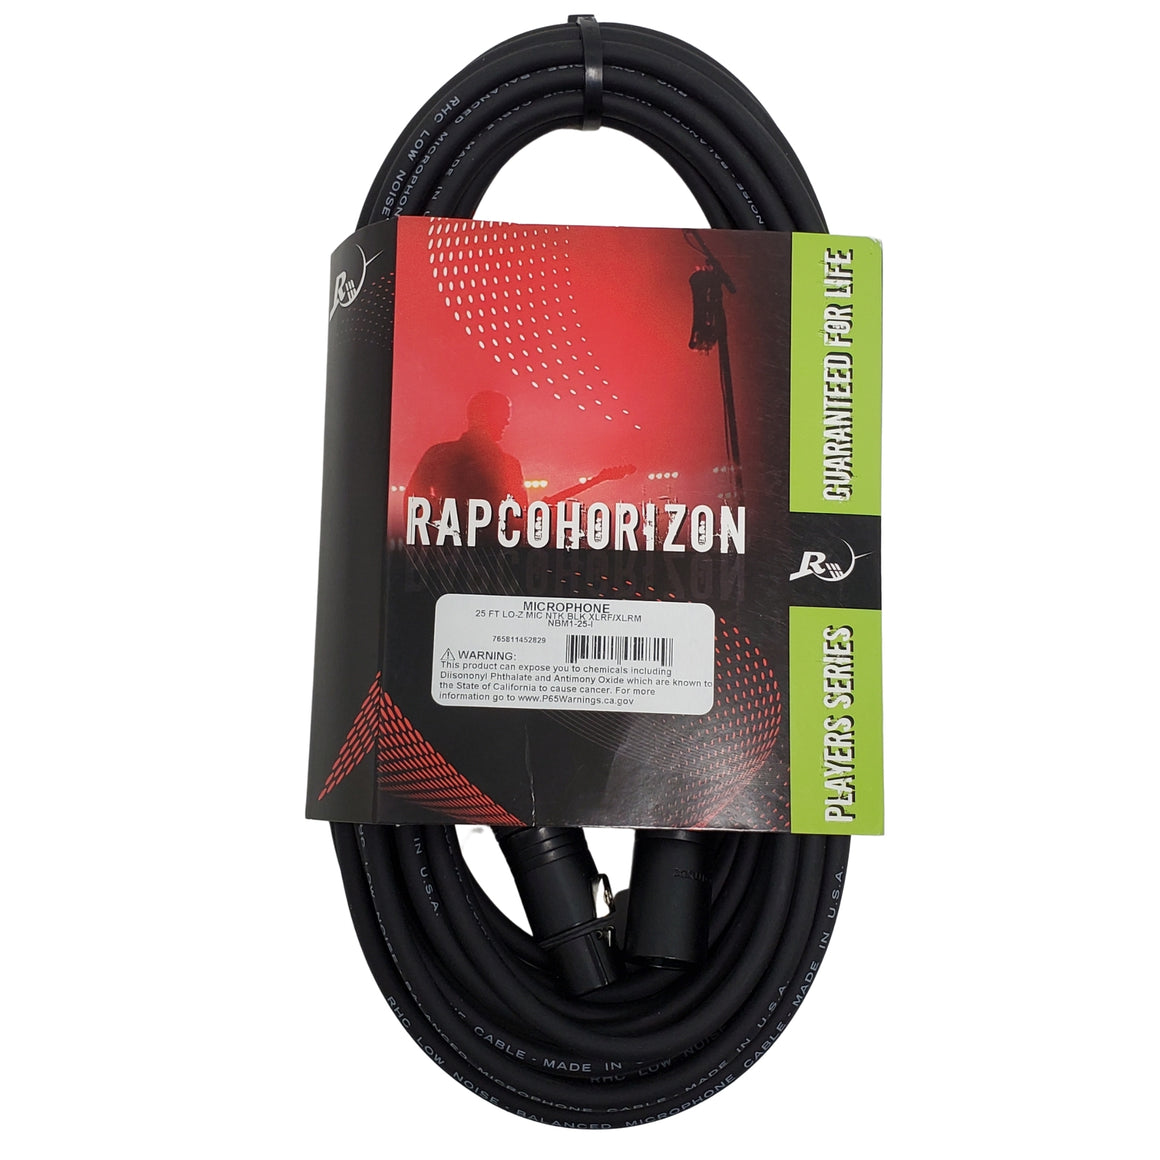 Horizon 25ft Lo-Z Mic Cable- Black Neutrik Connectors XLRF/XLRM  -NBM1-25